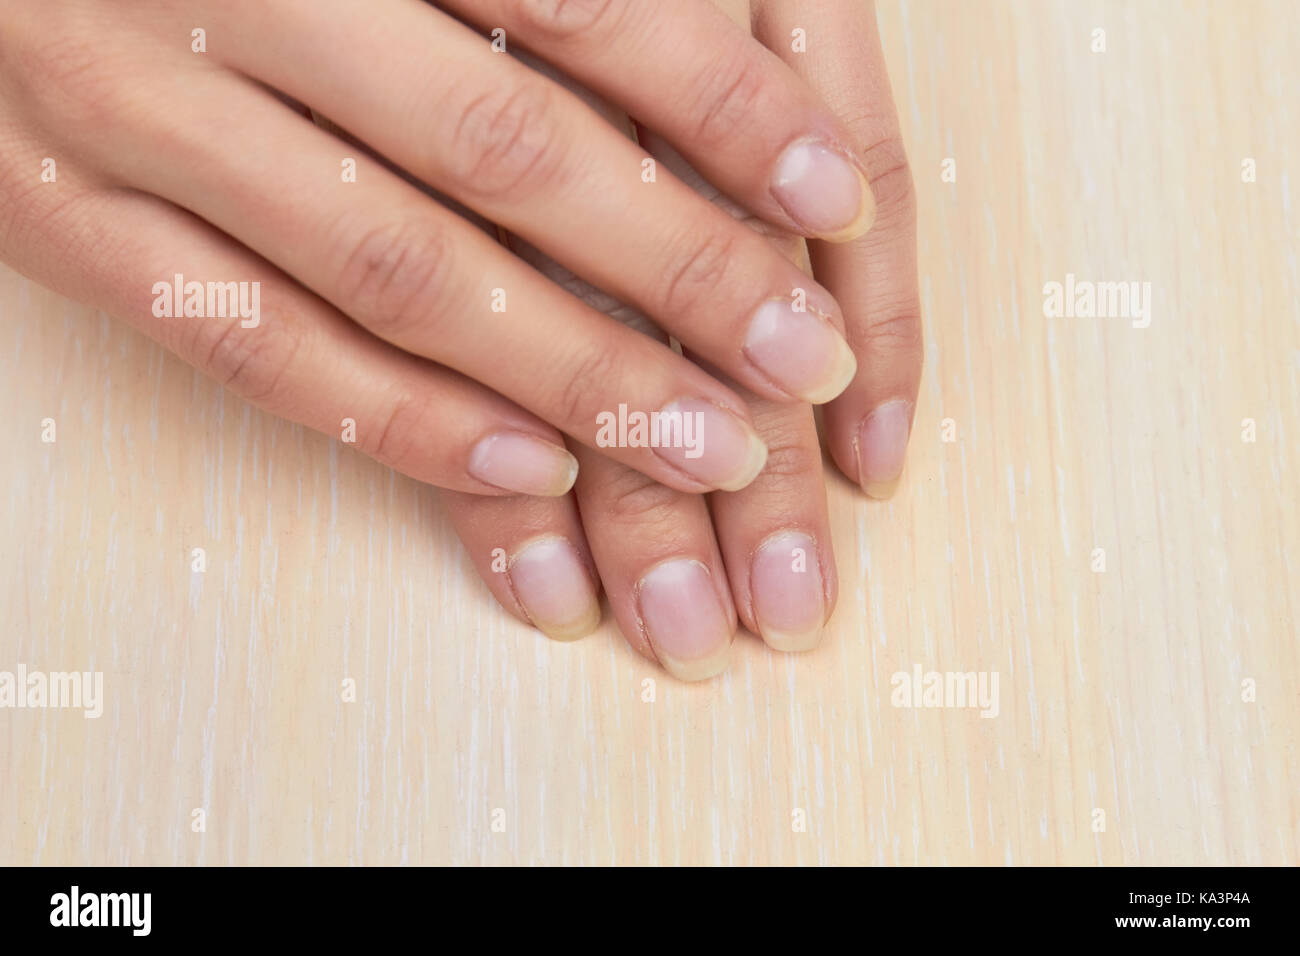 Girl Without Hands Stockfotos & Girl Without Hands Bilder - Alamy